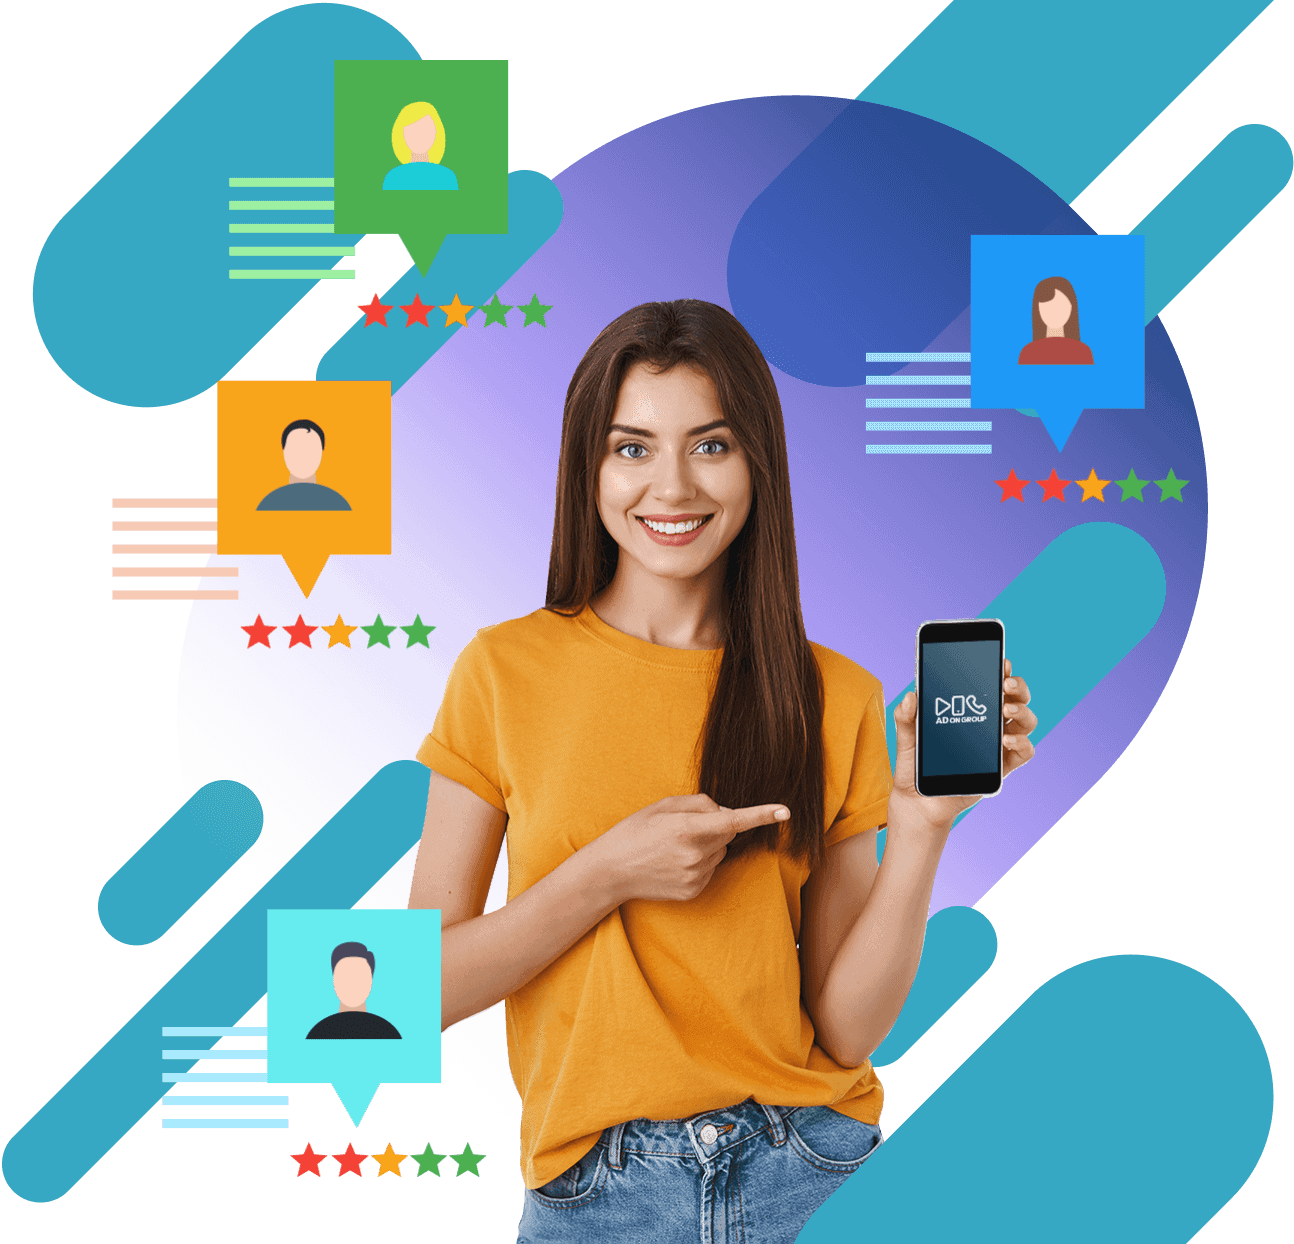 ad-on-review-satisfied-customer-feedback